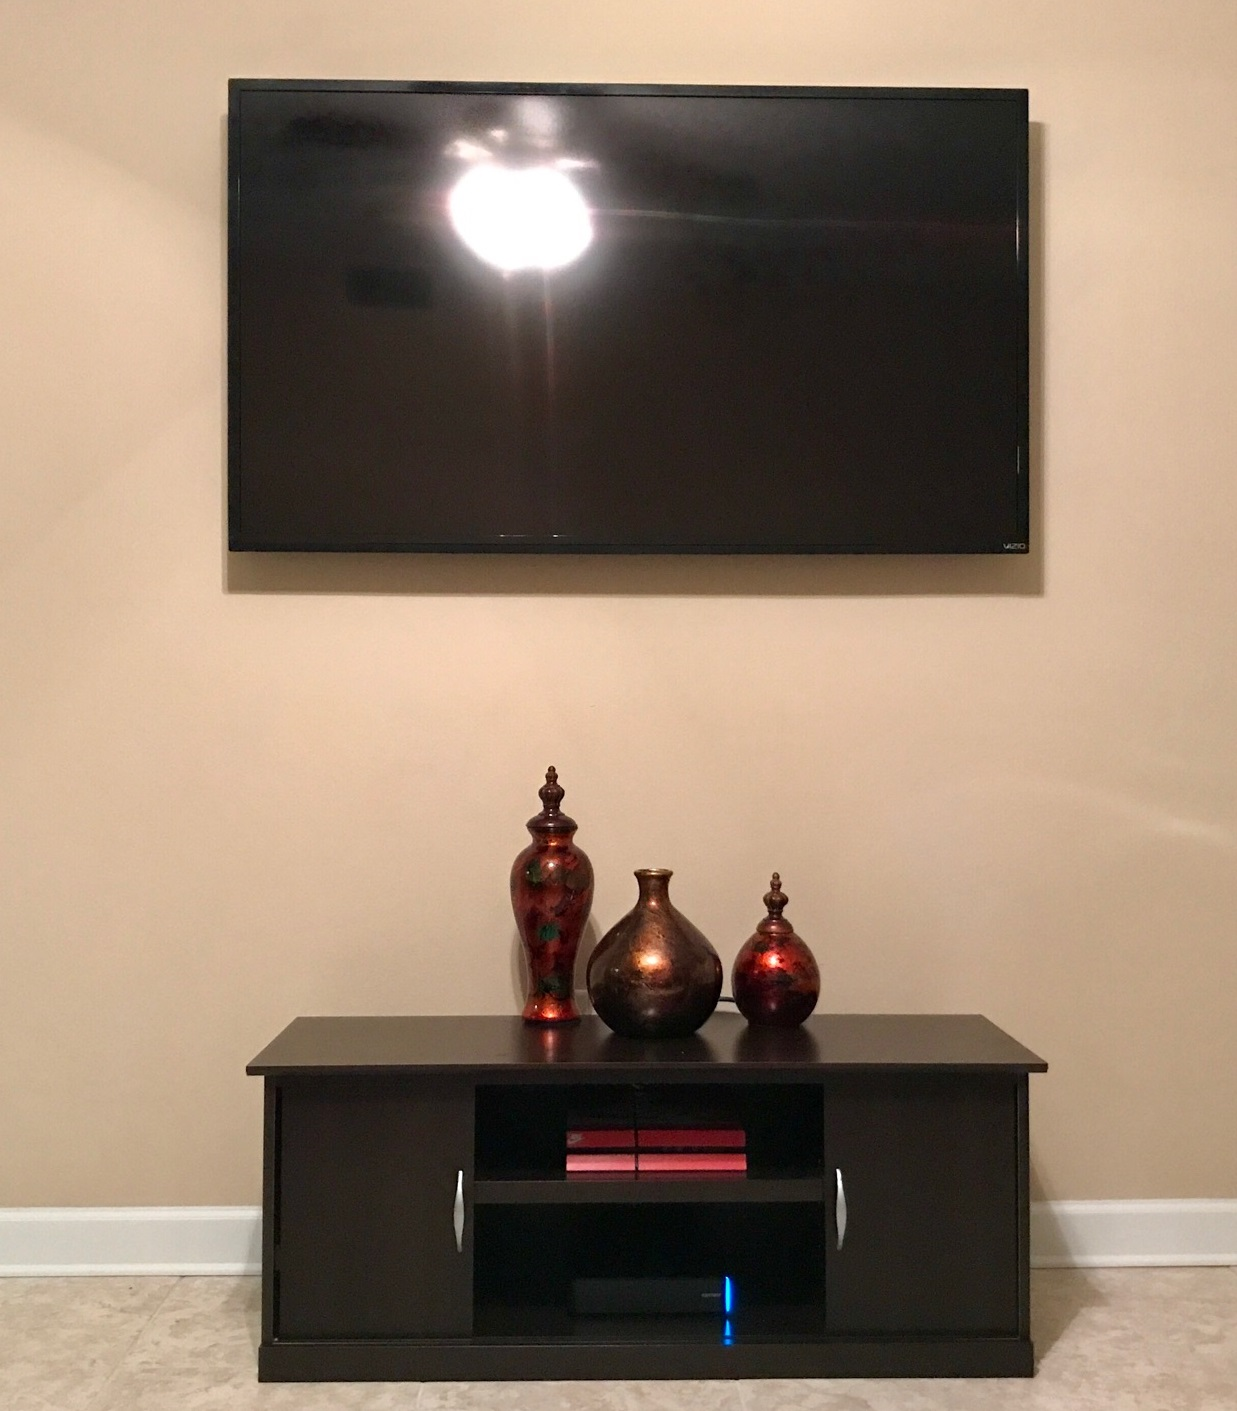 Fort Walton Home Theater Installer